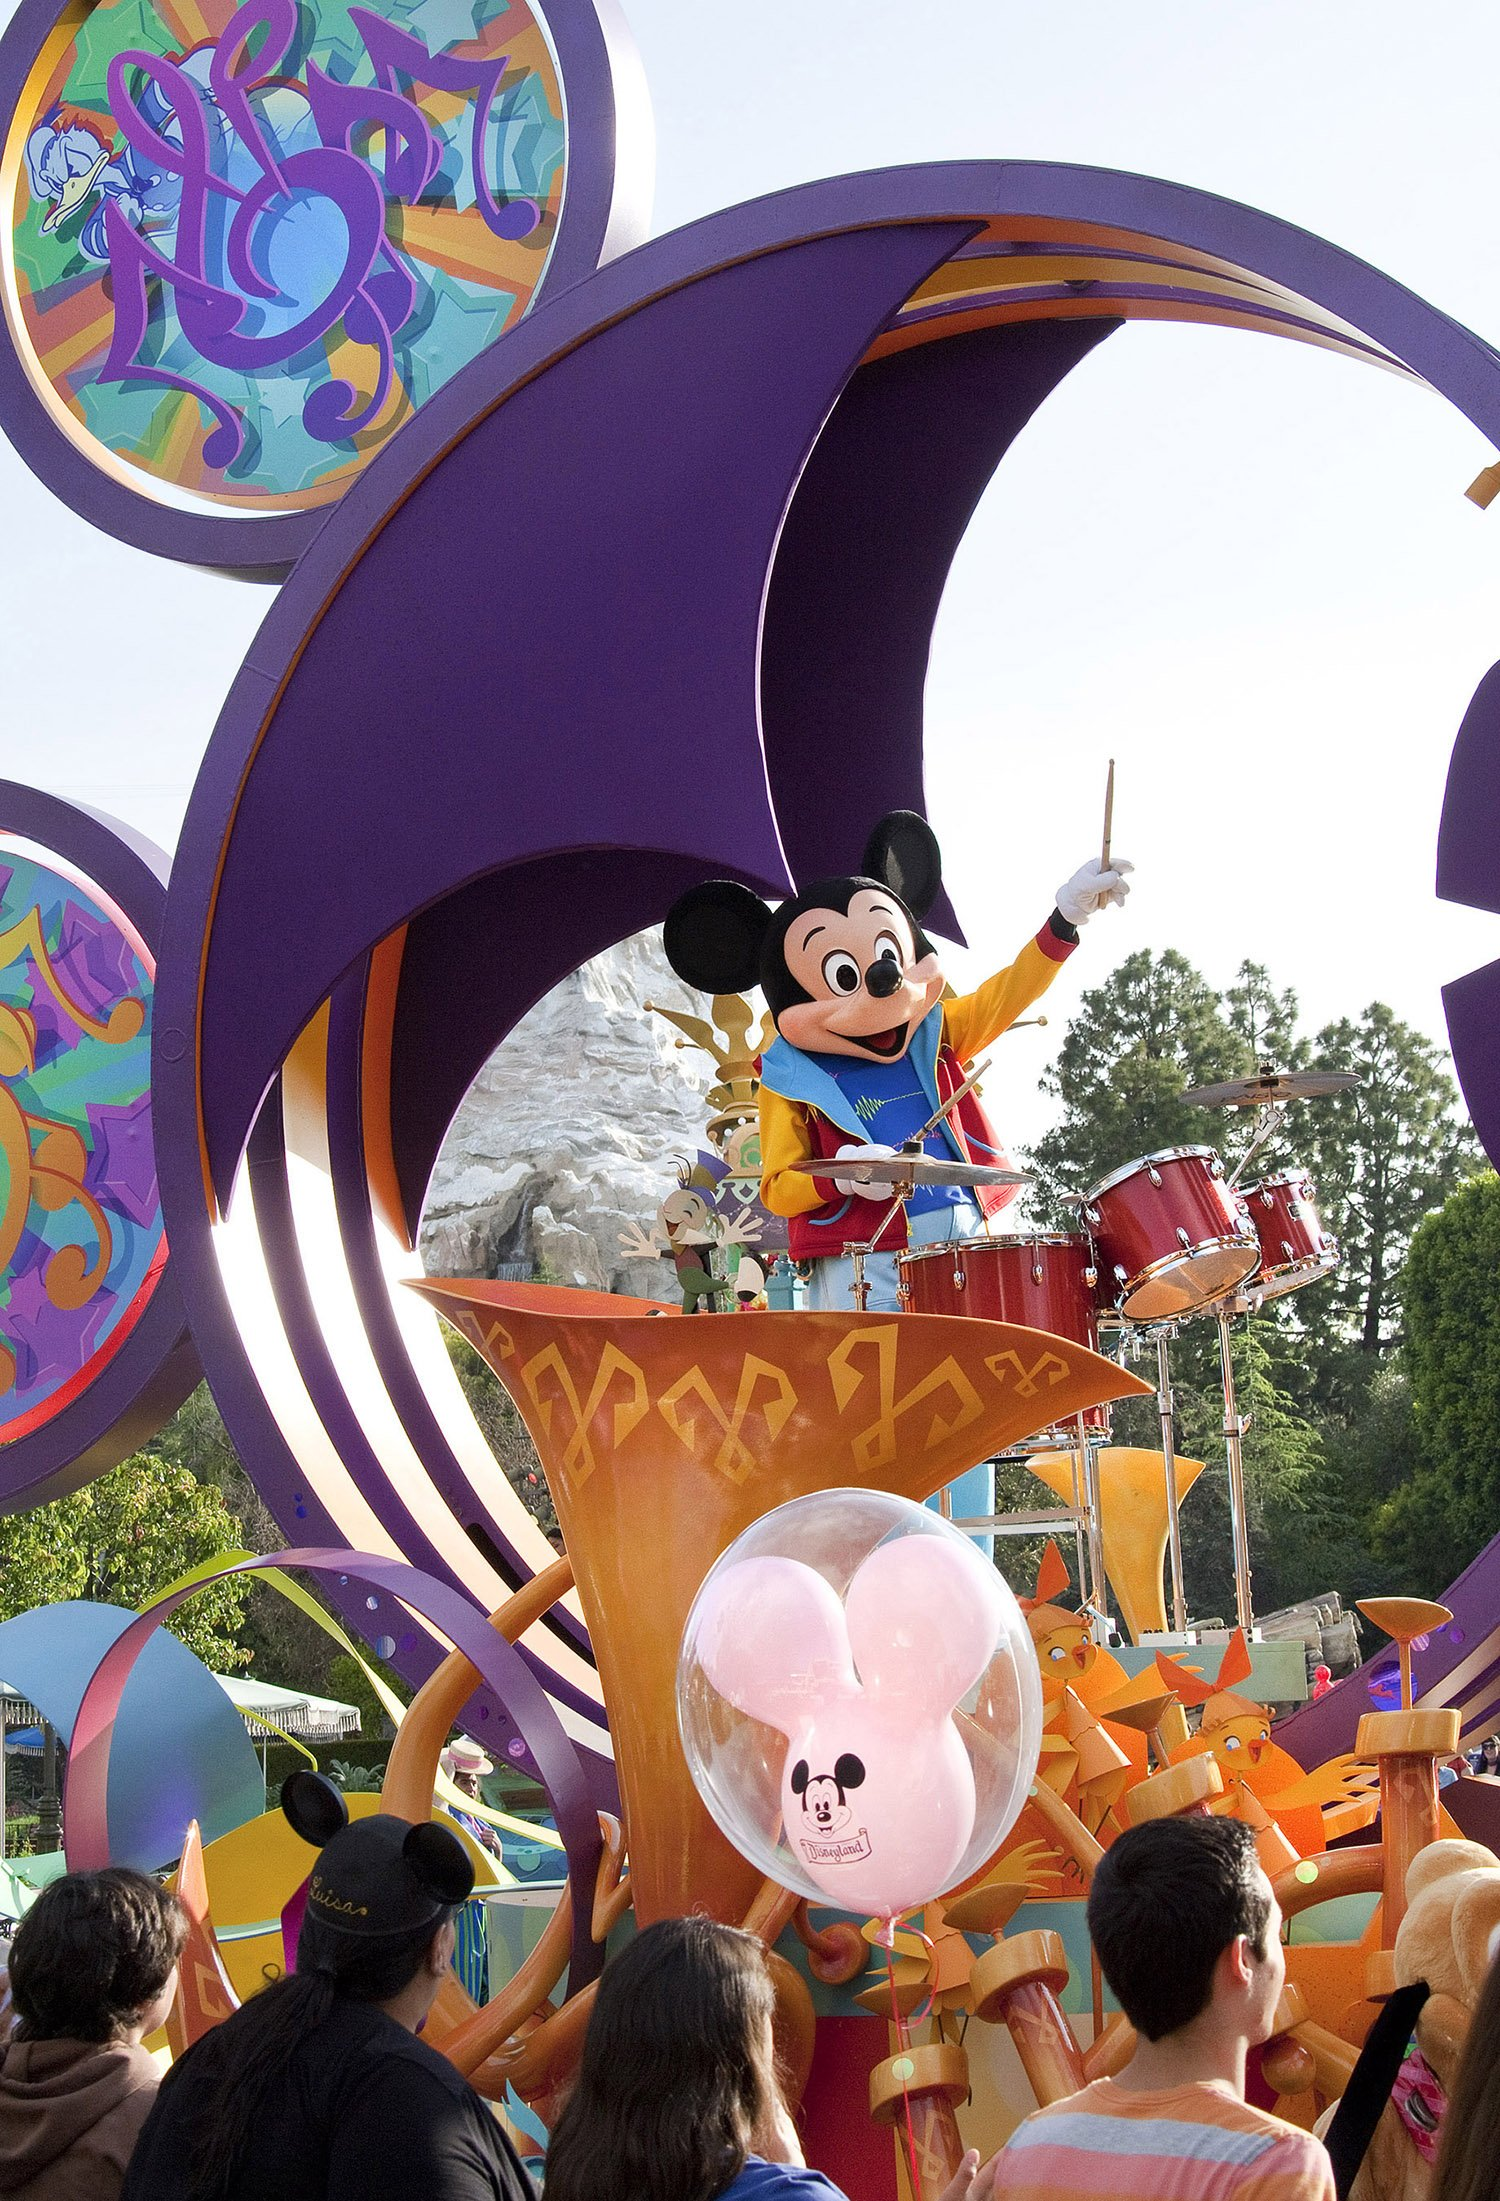 Heading to the Happiest Place on Earth? This full guide to Disneyland's Get Your Ears On Celebration is a must read!